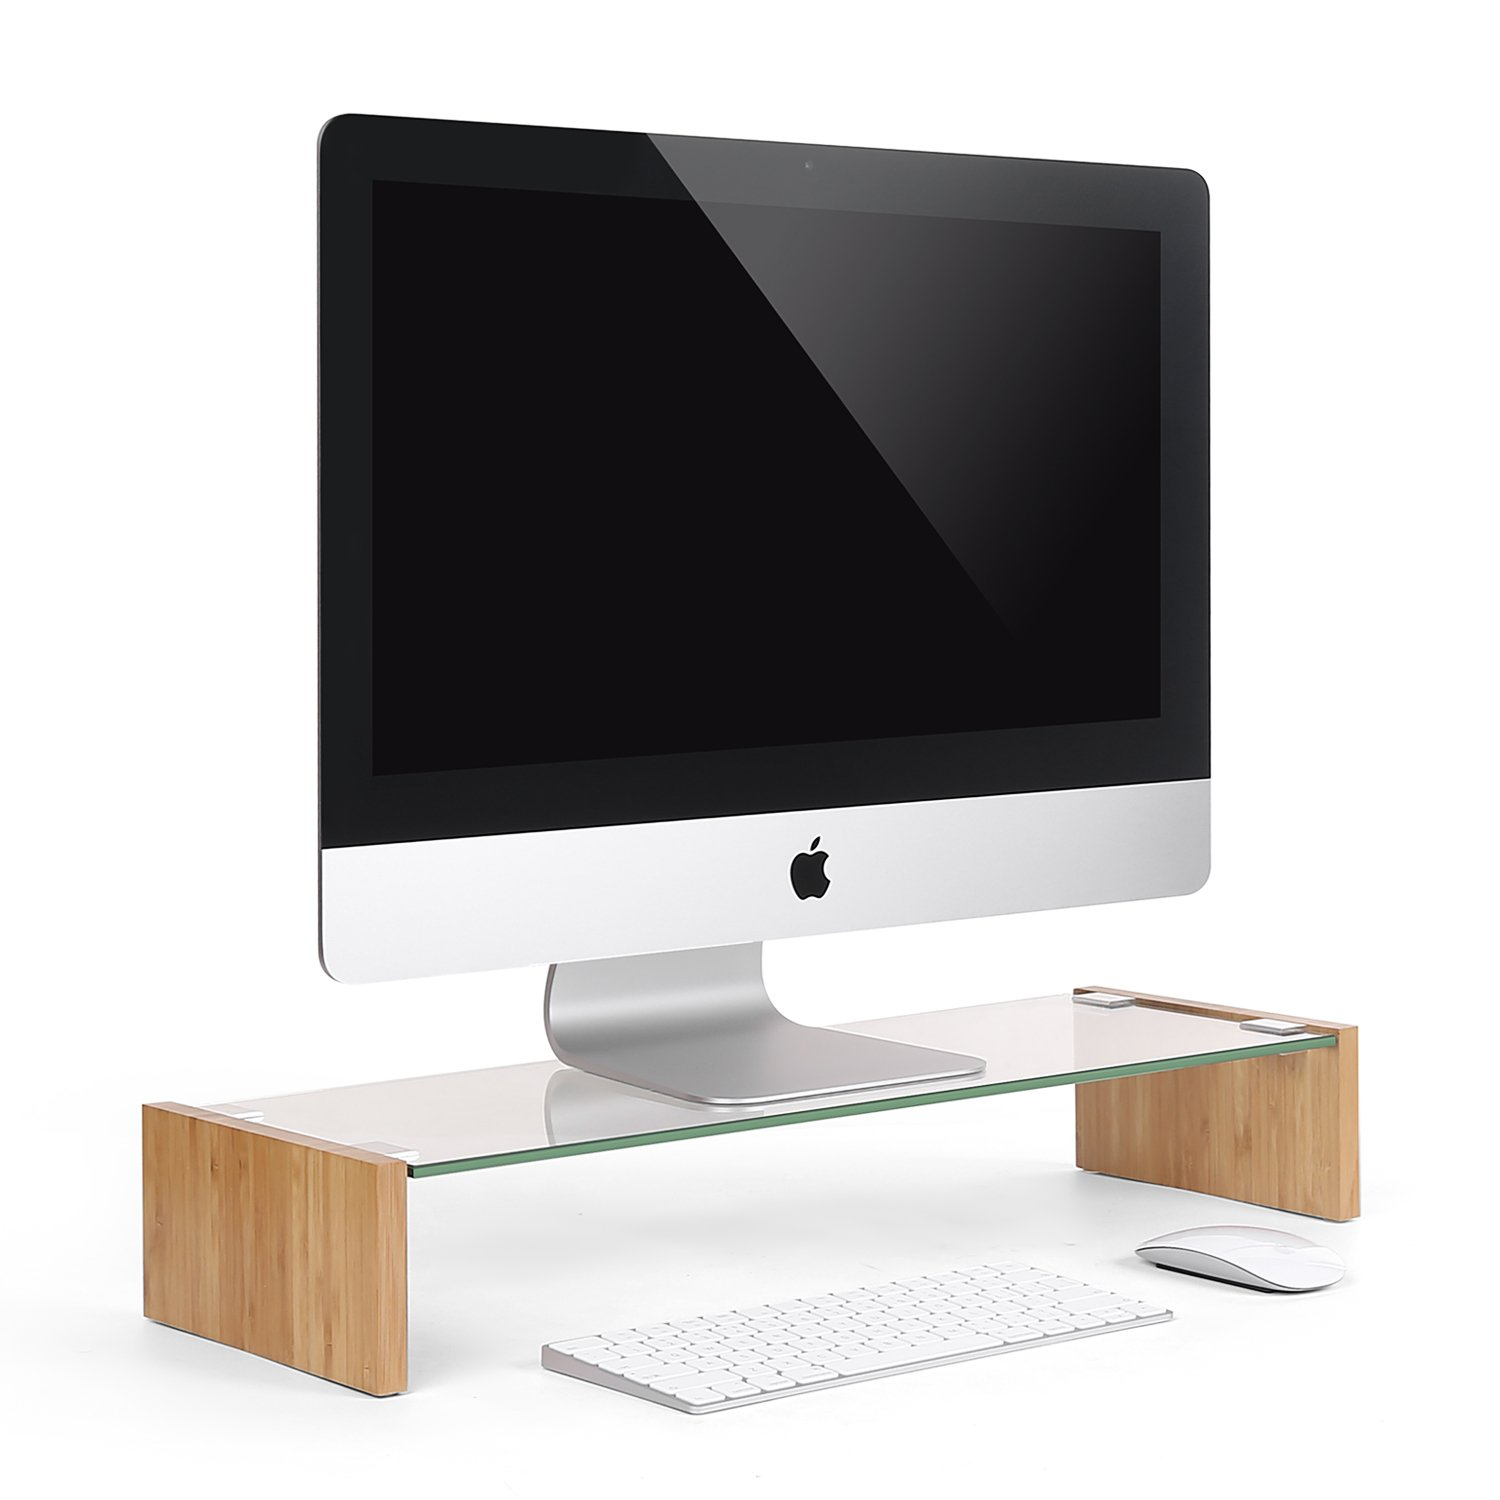 SACVON Tempered Glass Monitor Stand Riser for Computer,iMac,Laptop,Printer,Xbox One. Save Space Desktop Stand-Clear Bamboo by SACVON